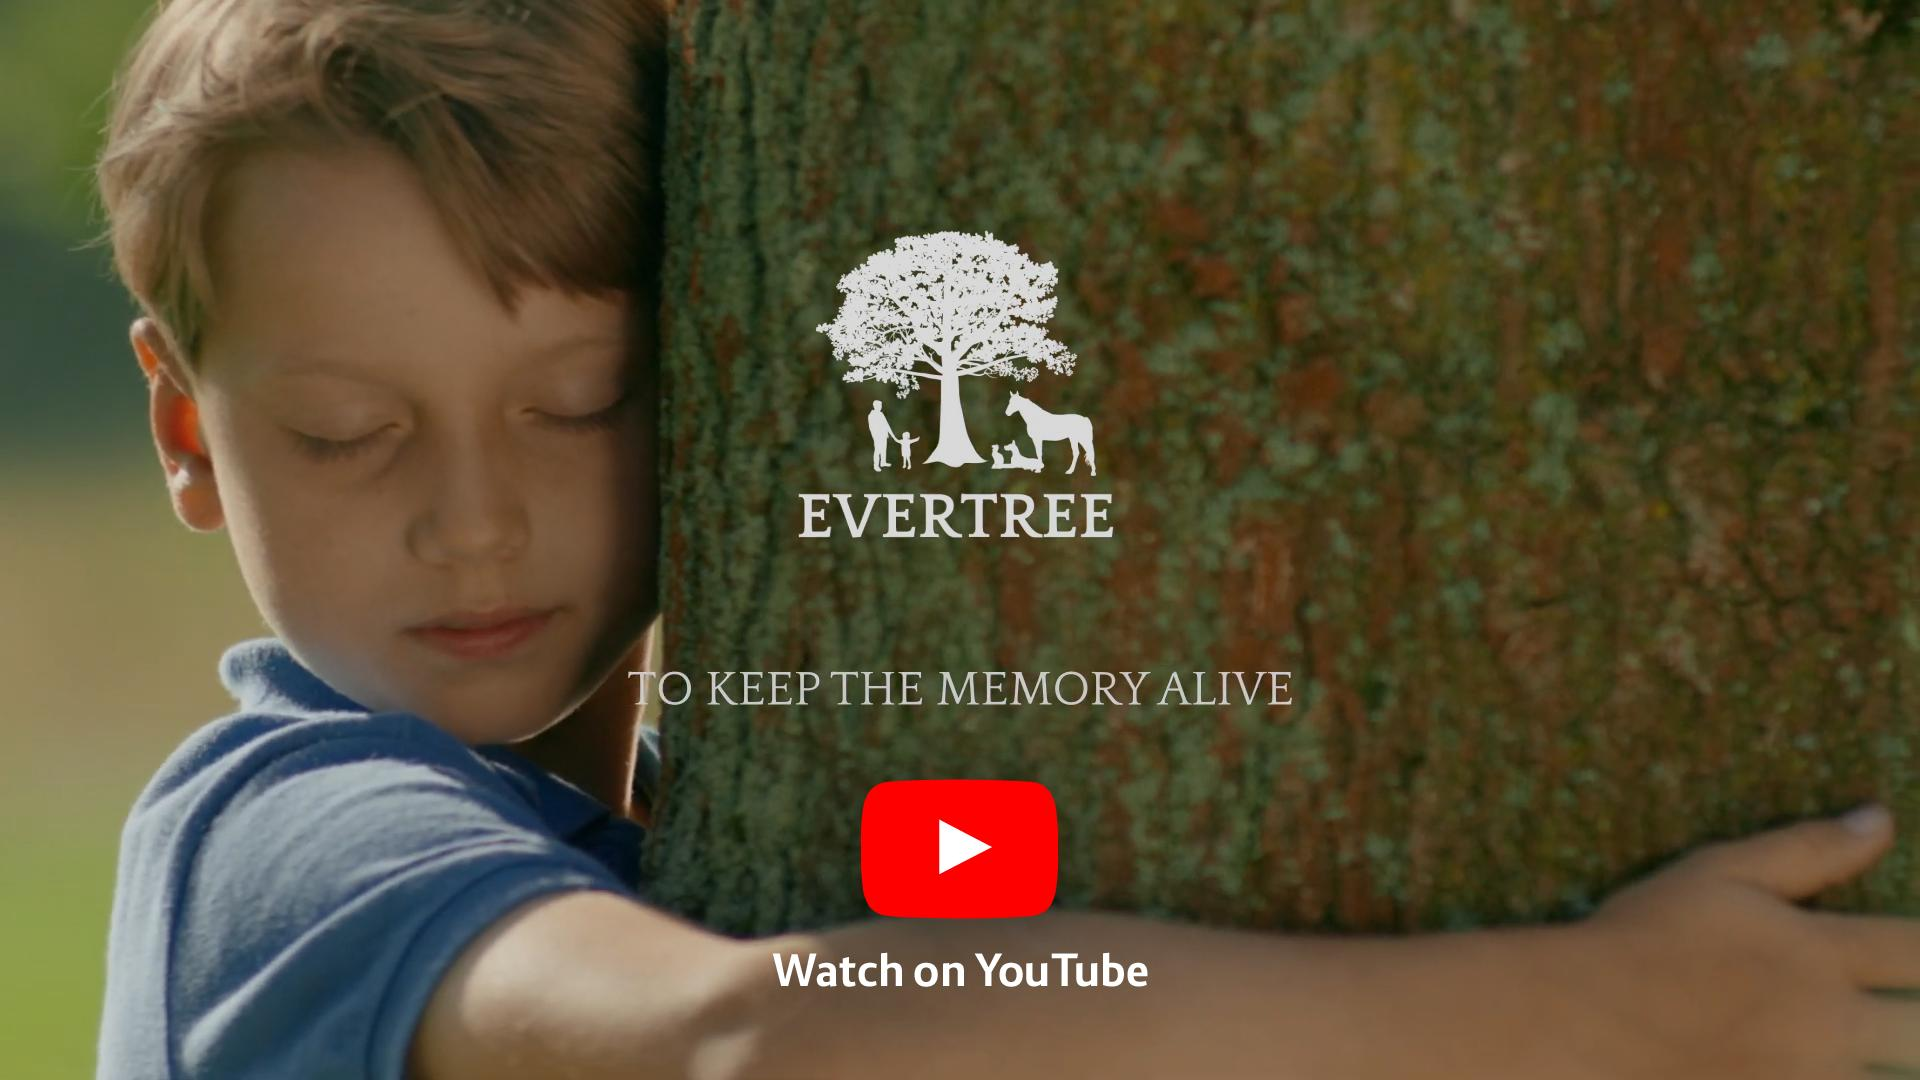 EVERTREE Video - Watch on YouTube